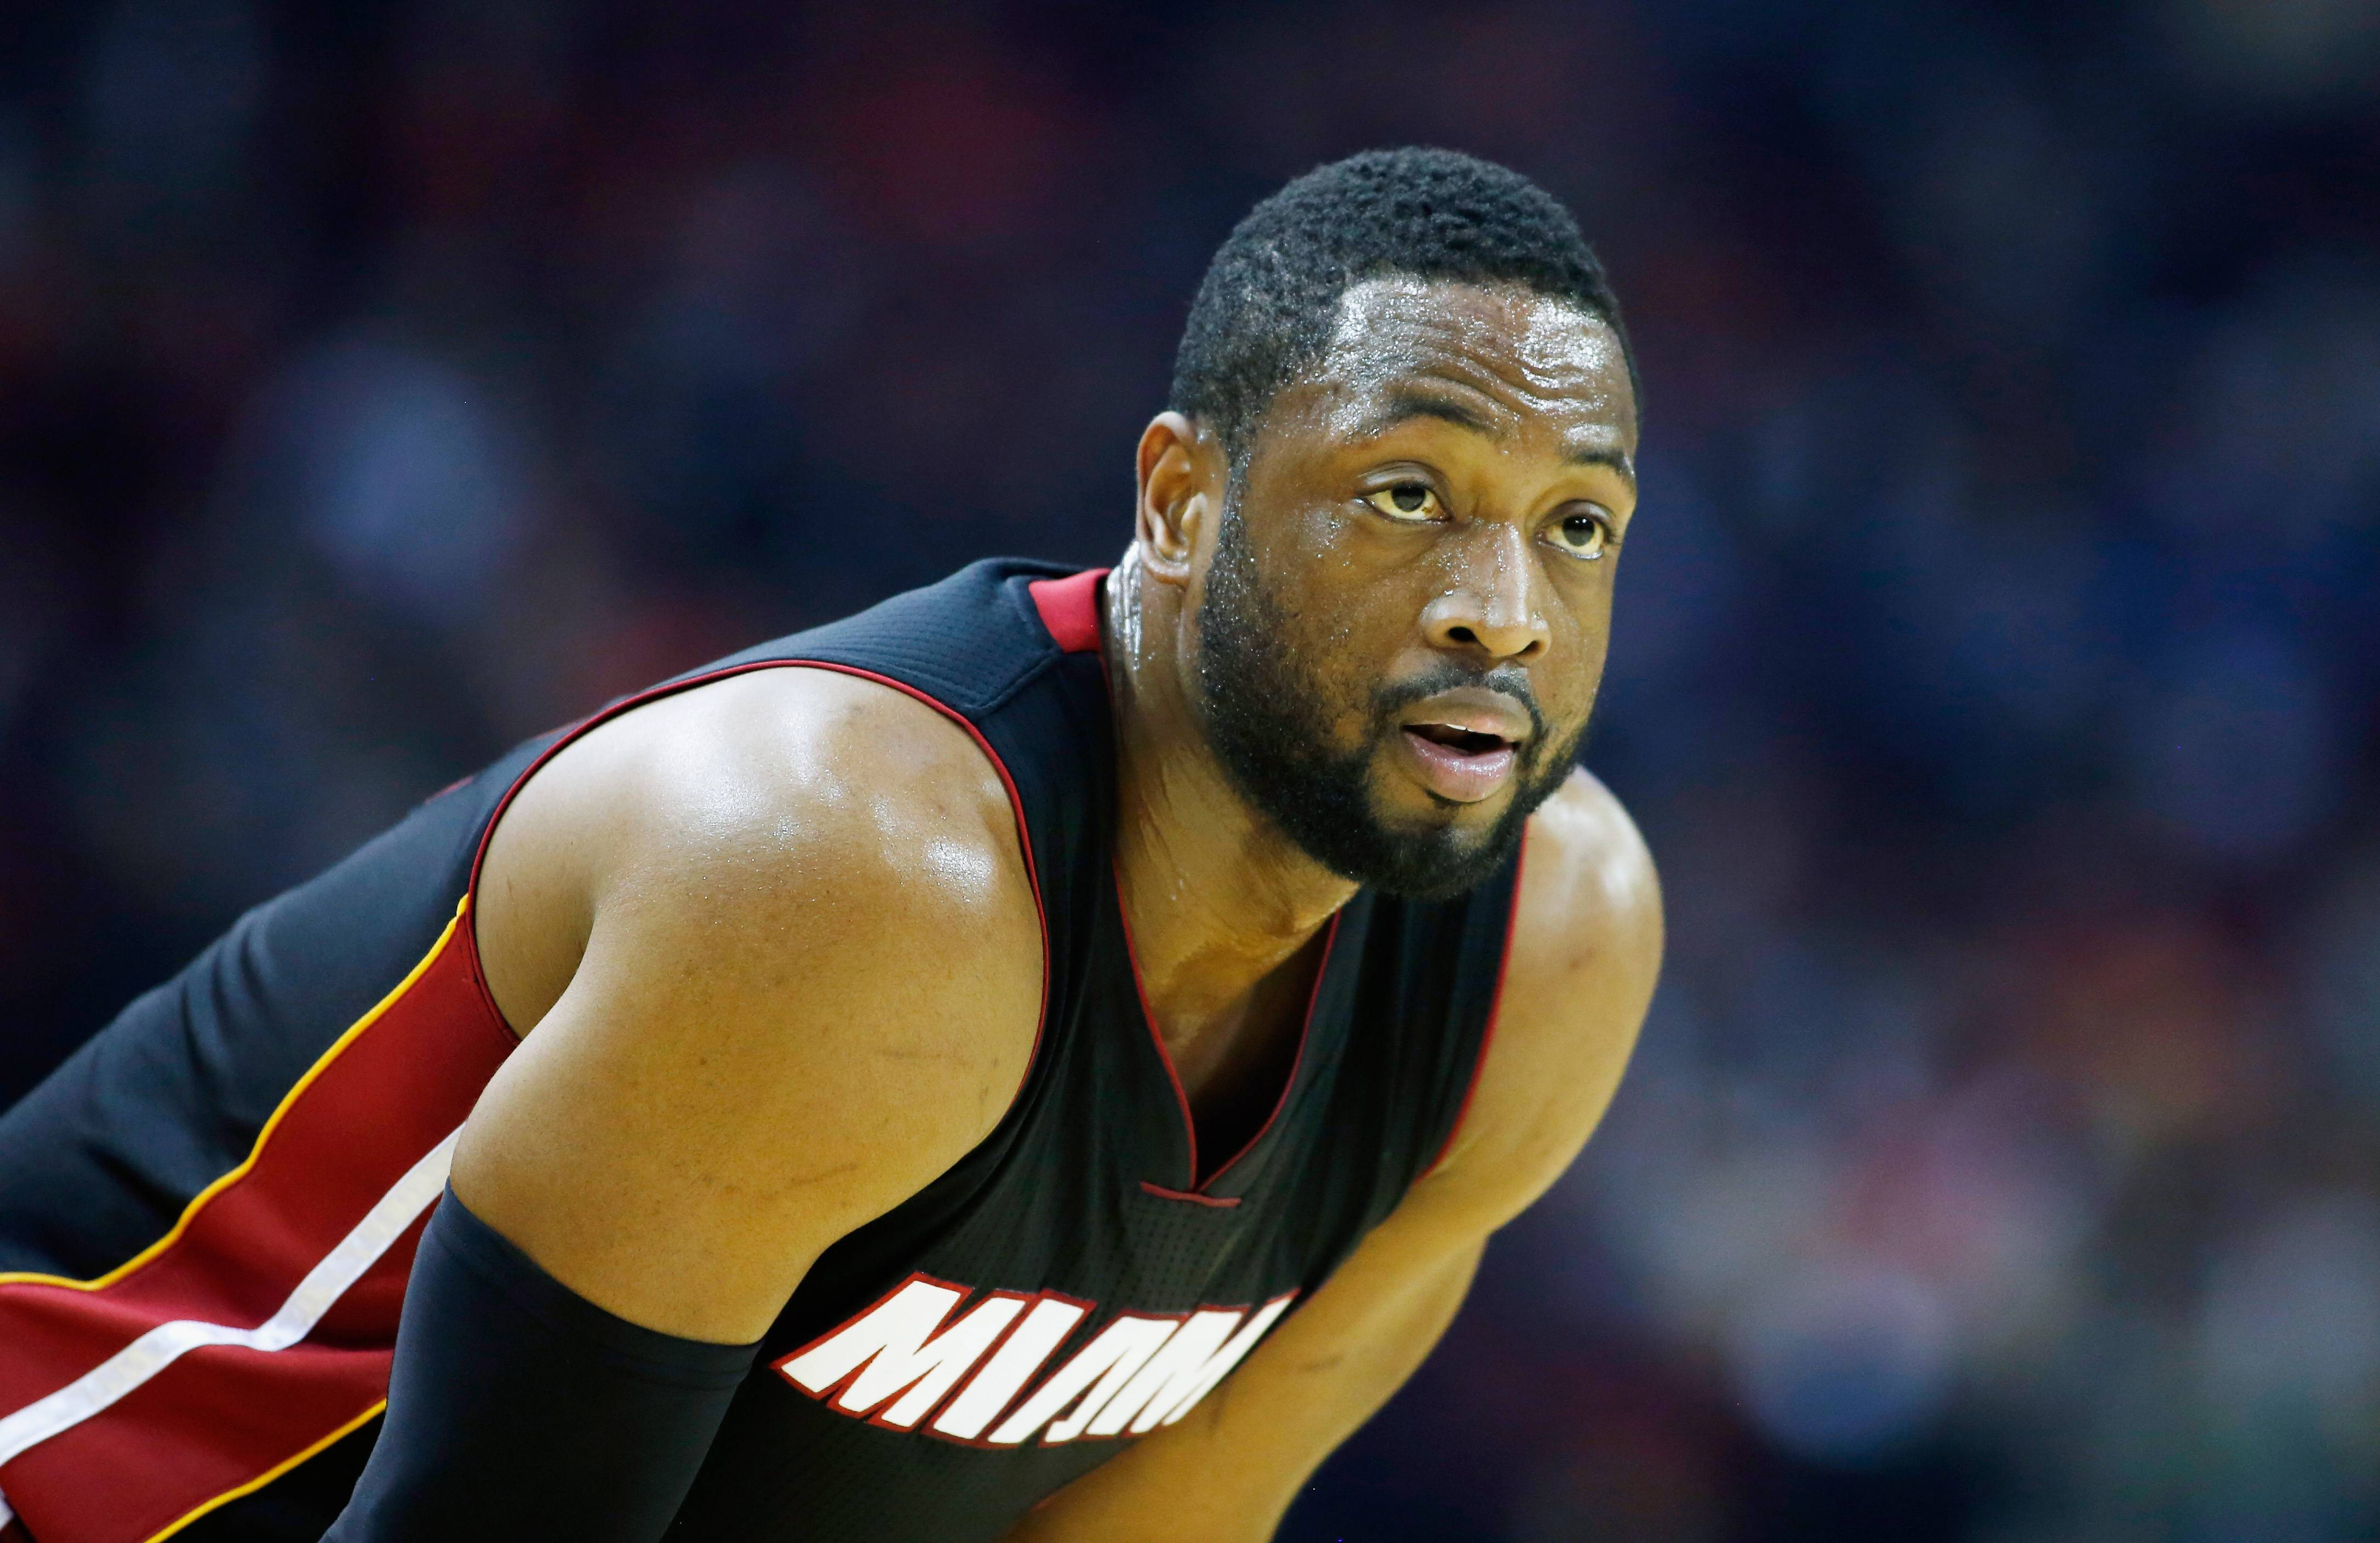 D. Wade's Finger Drama - The NBA has fined D. Wade $15,000, for flipping the bird at some heckling fans, according to reports. The Miami Heat player got frustrated with fans who were allegedly saying things about his wife, Gabrielle Union, so he went in. The NBA has gotten a lot stricter in terms of their standards for player conduct but we can't fault a man for defending his wife's honor.   (Photo: Scott Halleran/Getty Images)